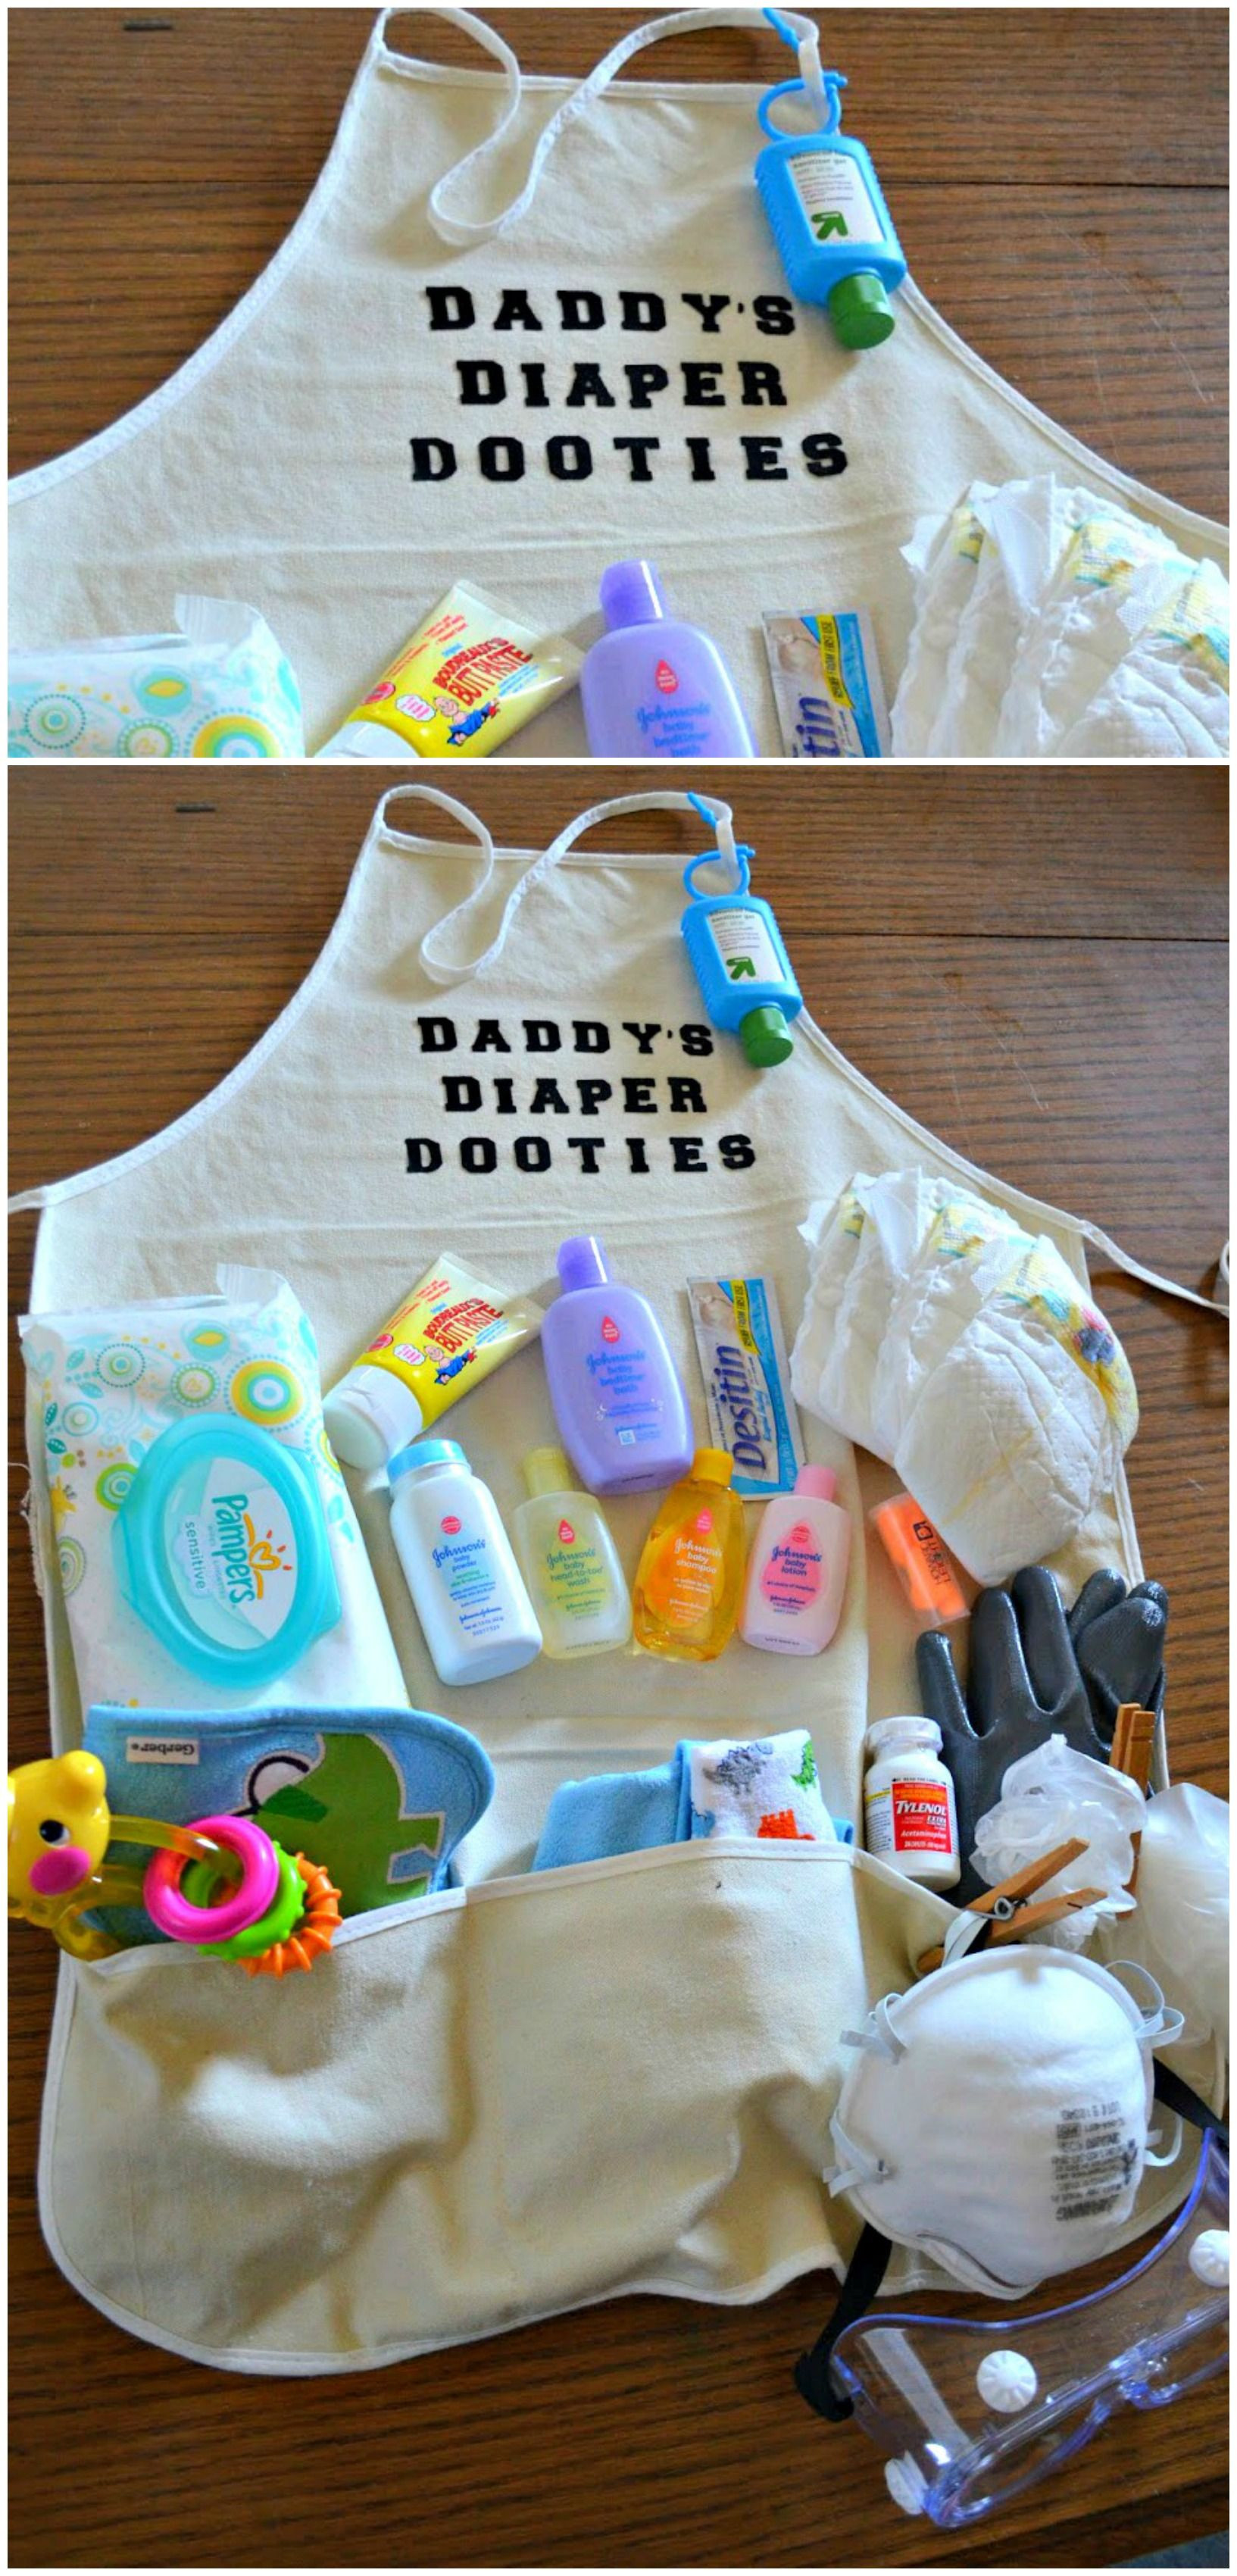 Best ideas about Baby Shower Gift Ideas For Dad . Save or Pin Daddy s Diaper Dooties Packed with diapers wipes Now.